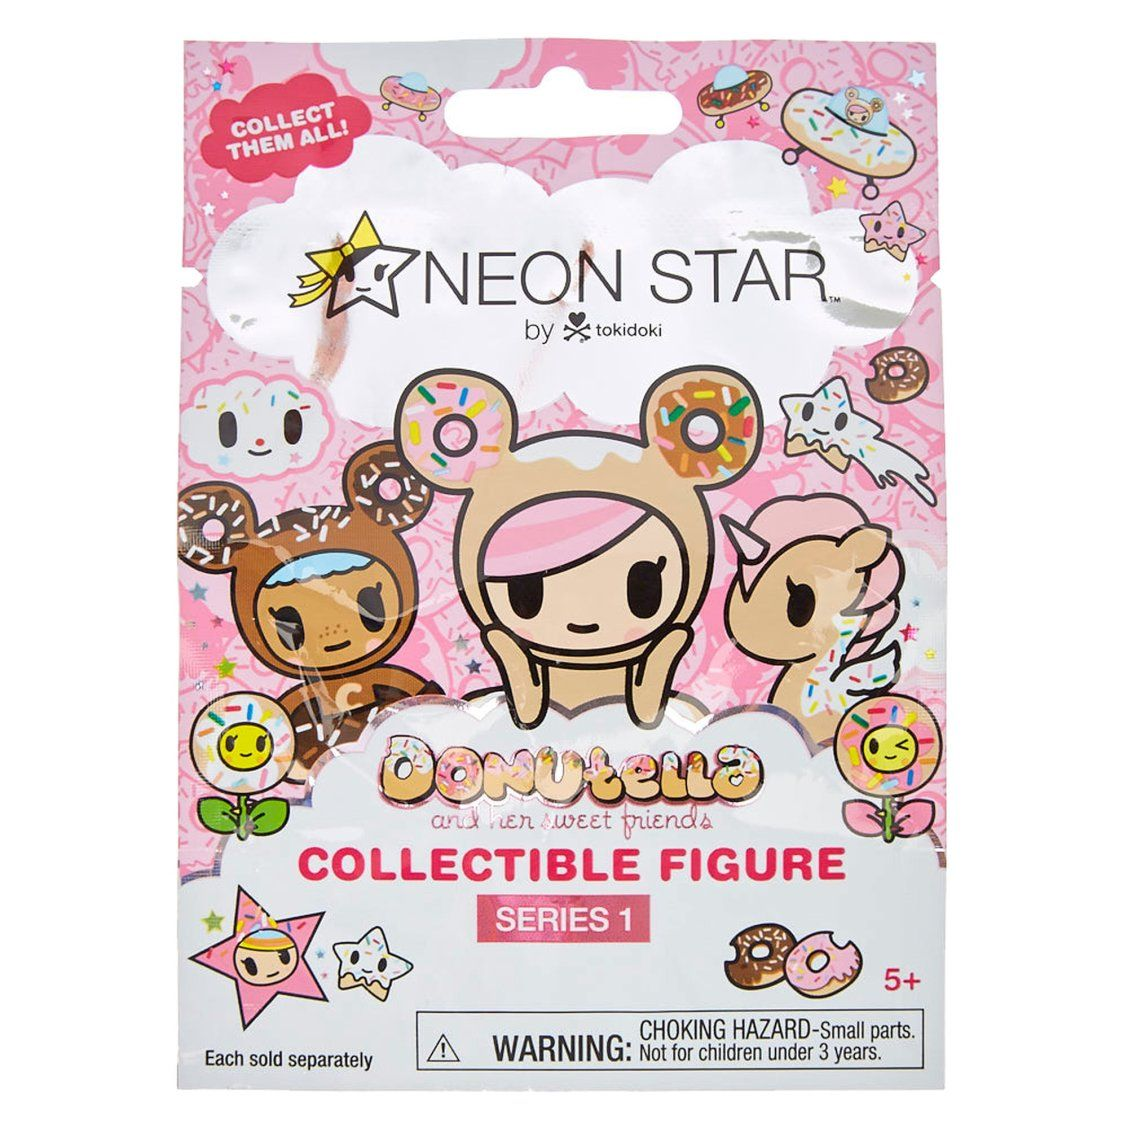 Neon star donutella collectible figure series 0 neon star captures series 0 neon star captures the undeniable cuteness of tokidoki the internationally recognized lifestyle brand meaning sometimes in japanese stopboris Choice Image